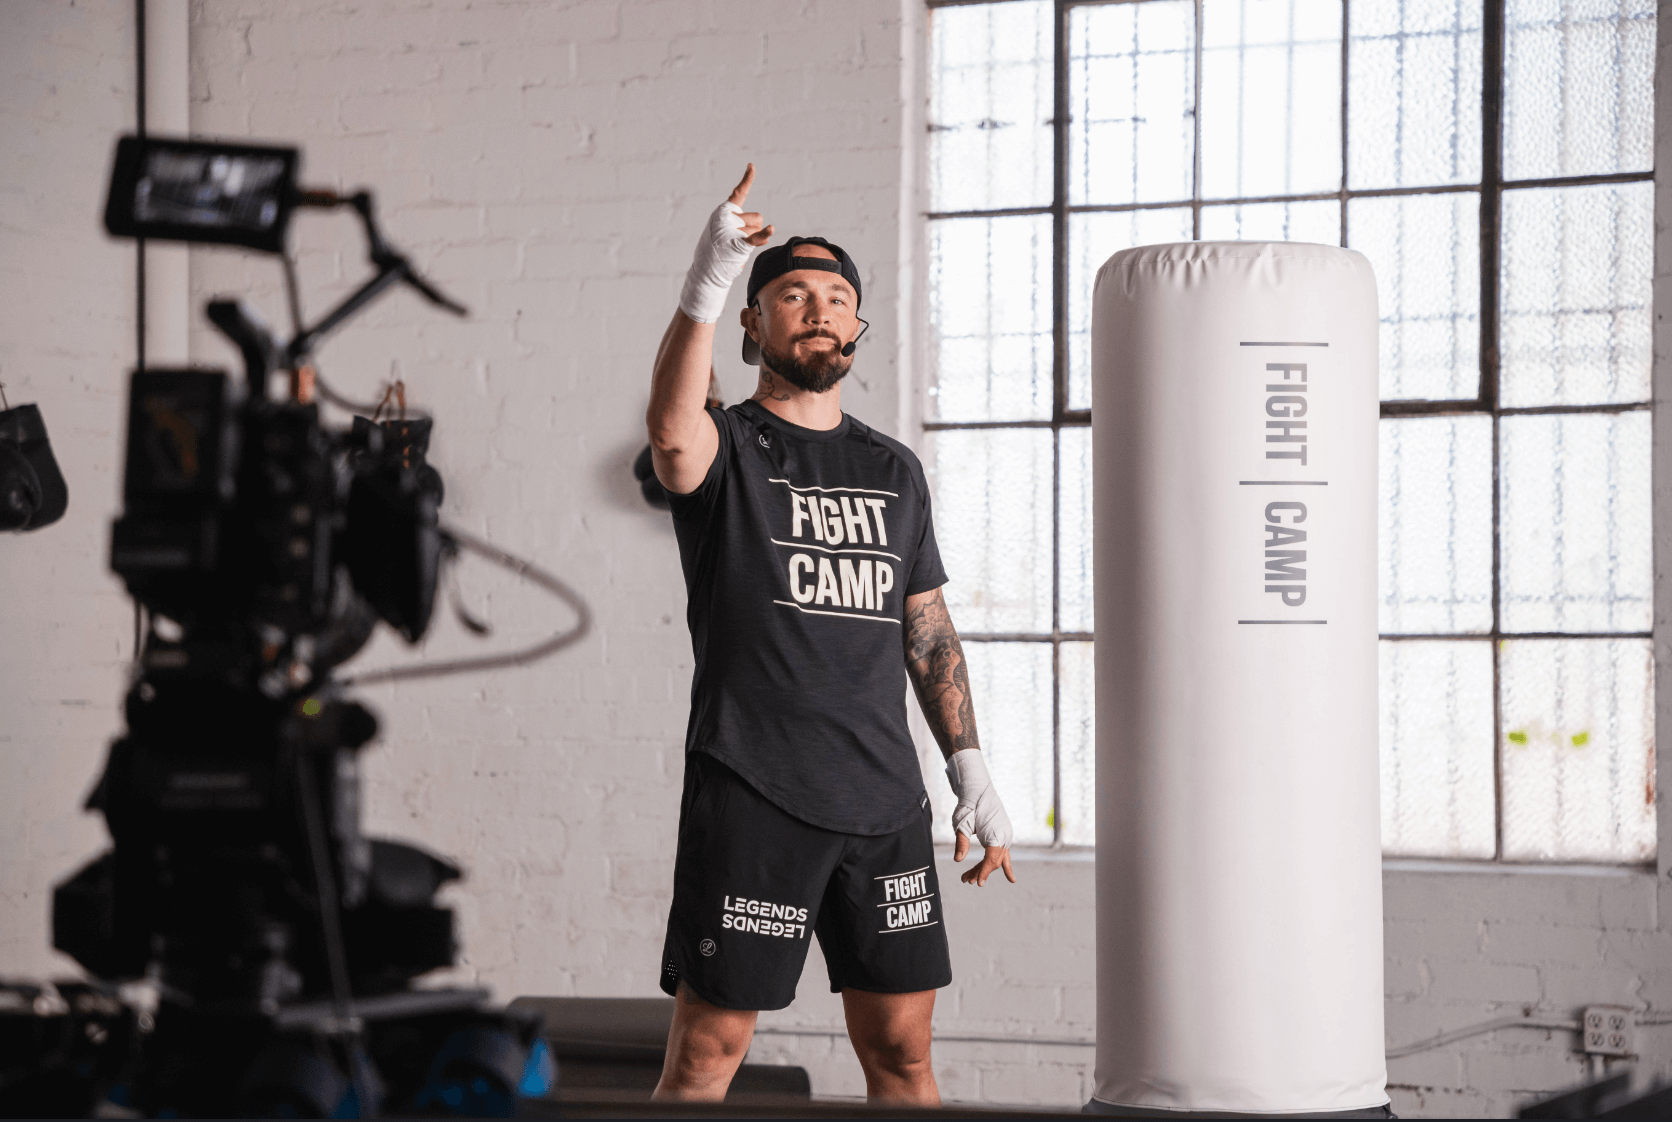 Aaron Swenson Behind The Scenes Teaching Boxing